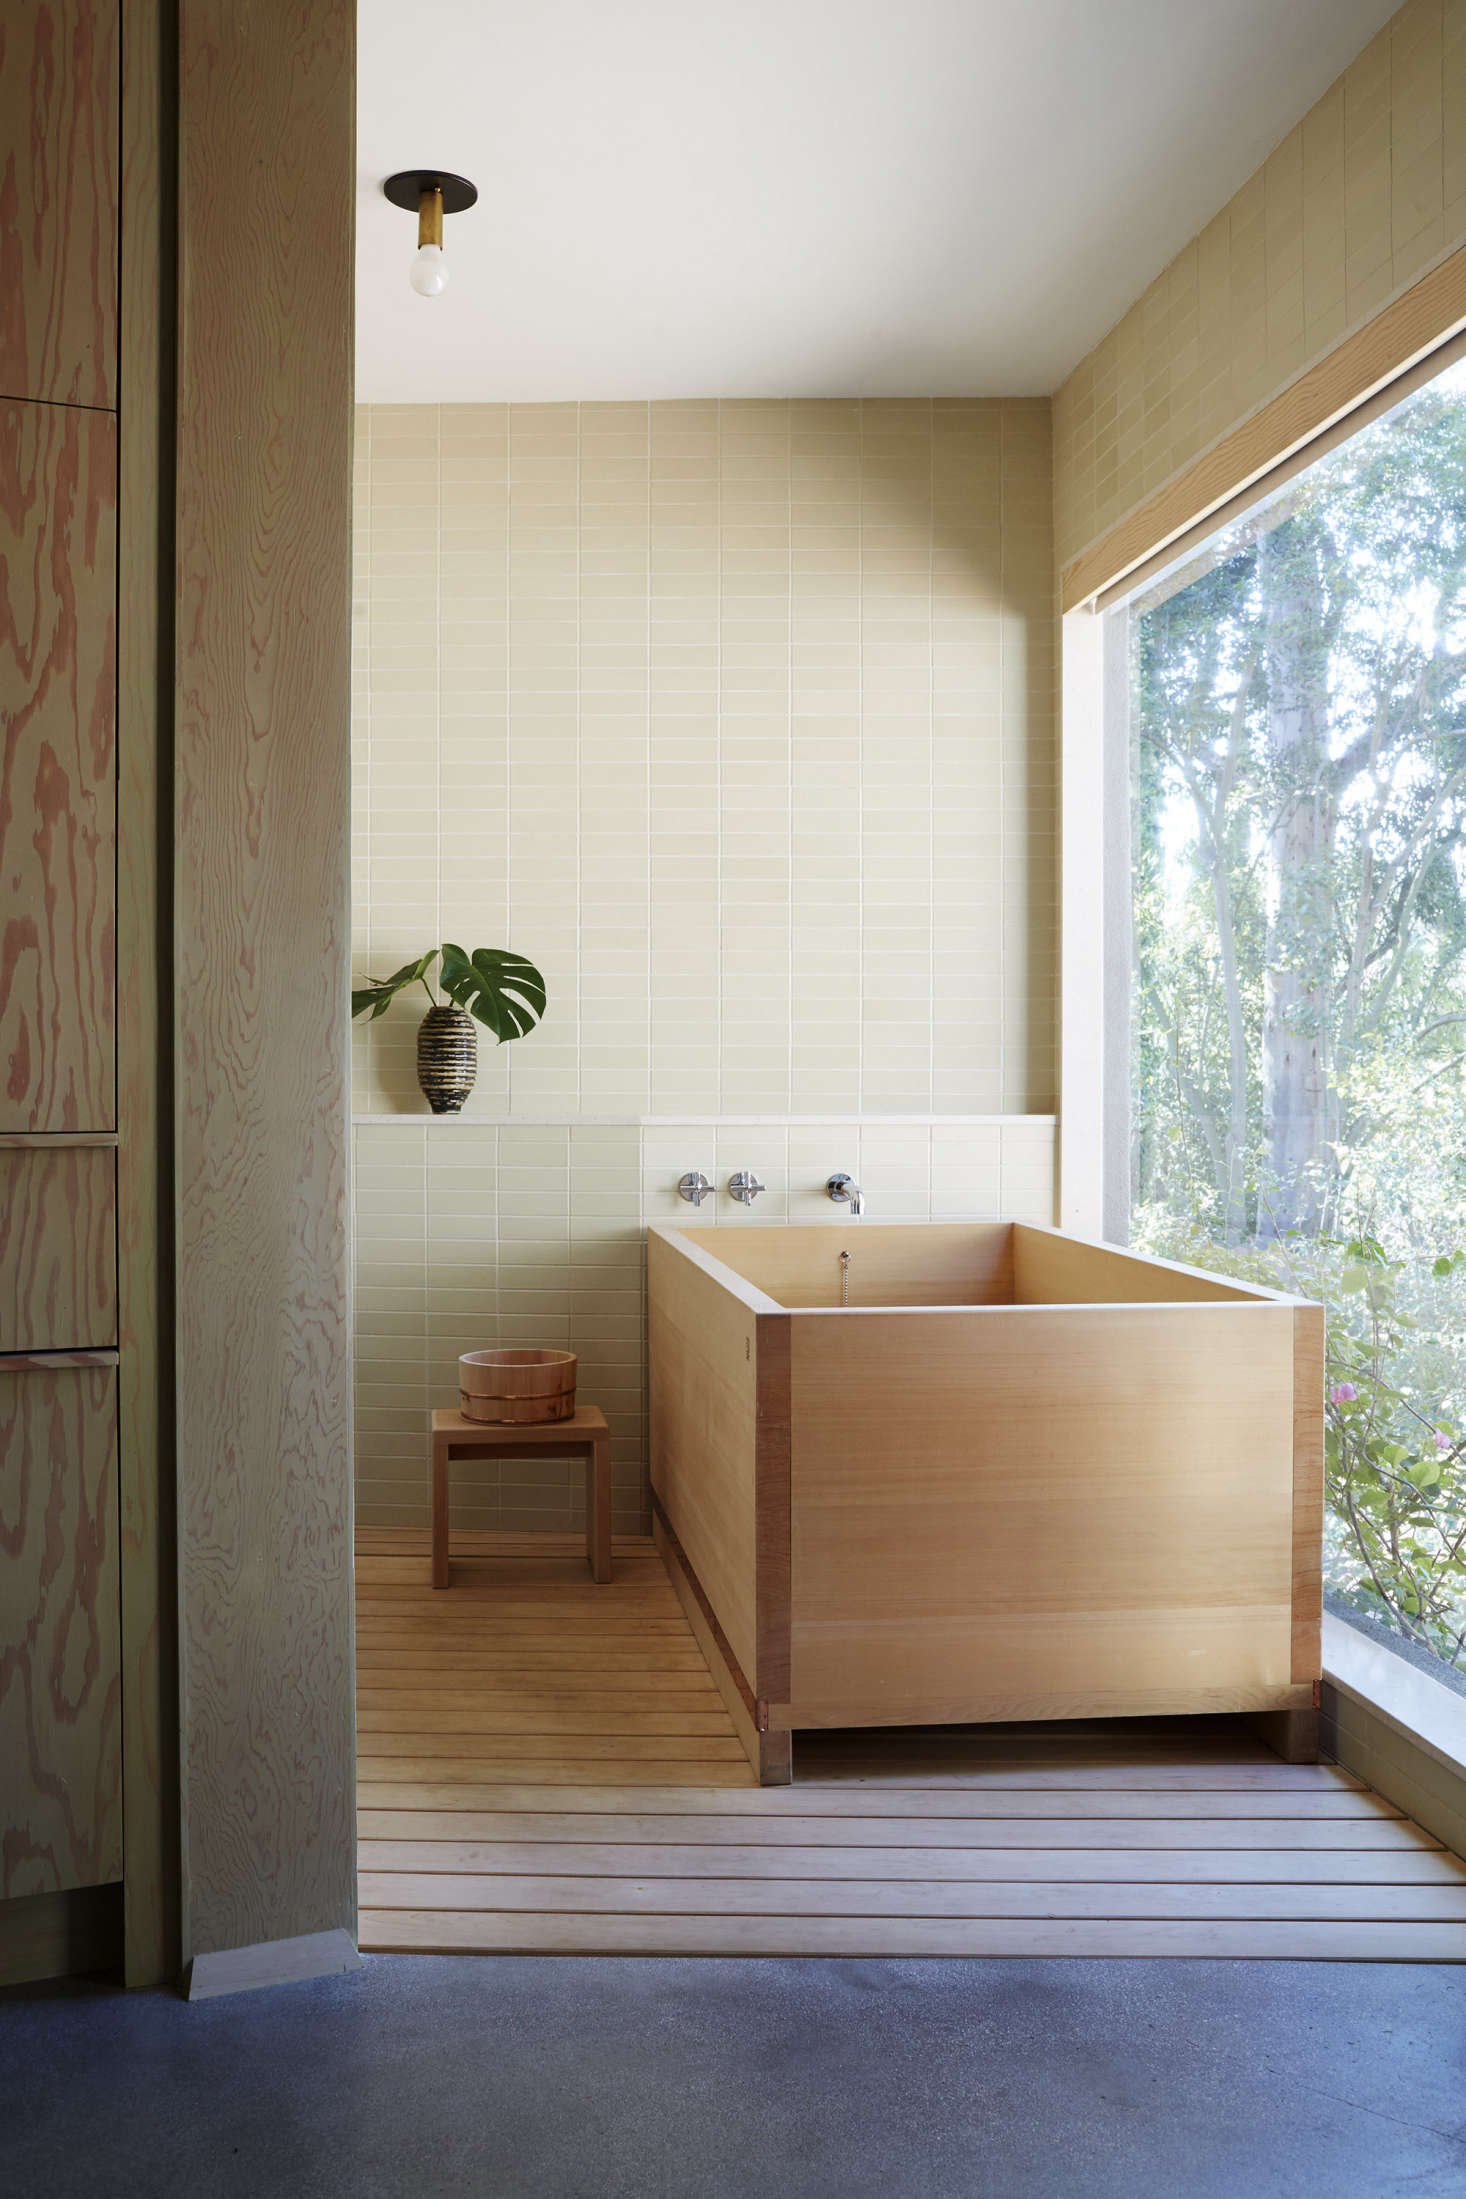 9 Favorites: Japanese-Style Bathtubs Around the World - Remodelista